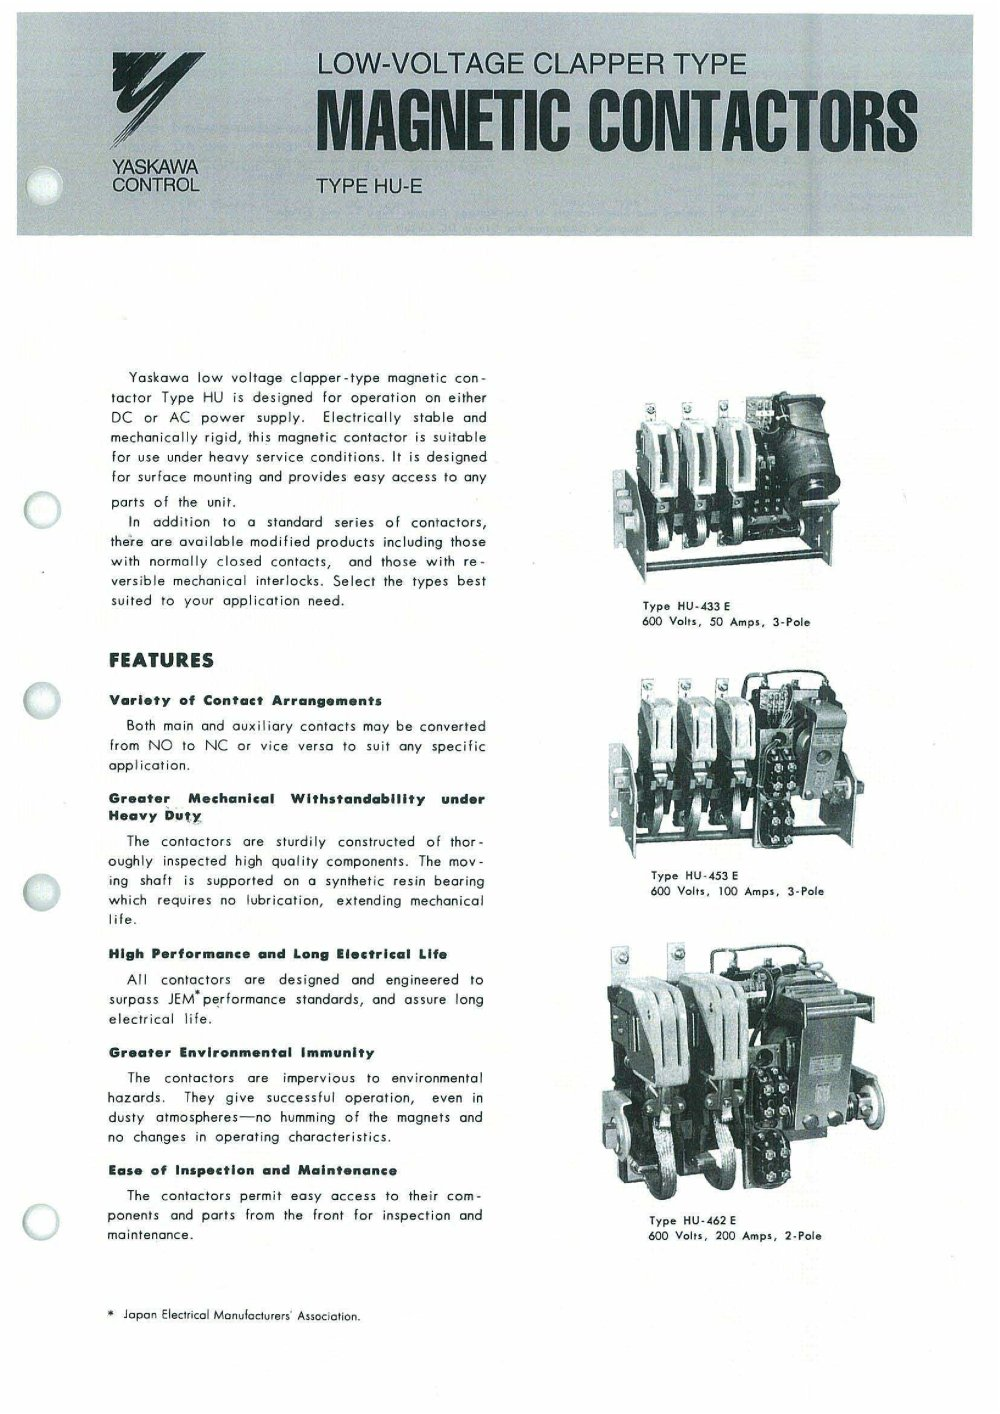 Magnetic Contactor Wiring Diagram 3ph Yaskawa Basic Guide Funky Relay Definition Images Best For Rh Oursweetbakeshop Info